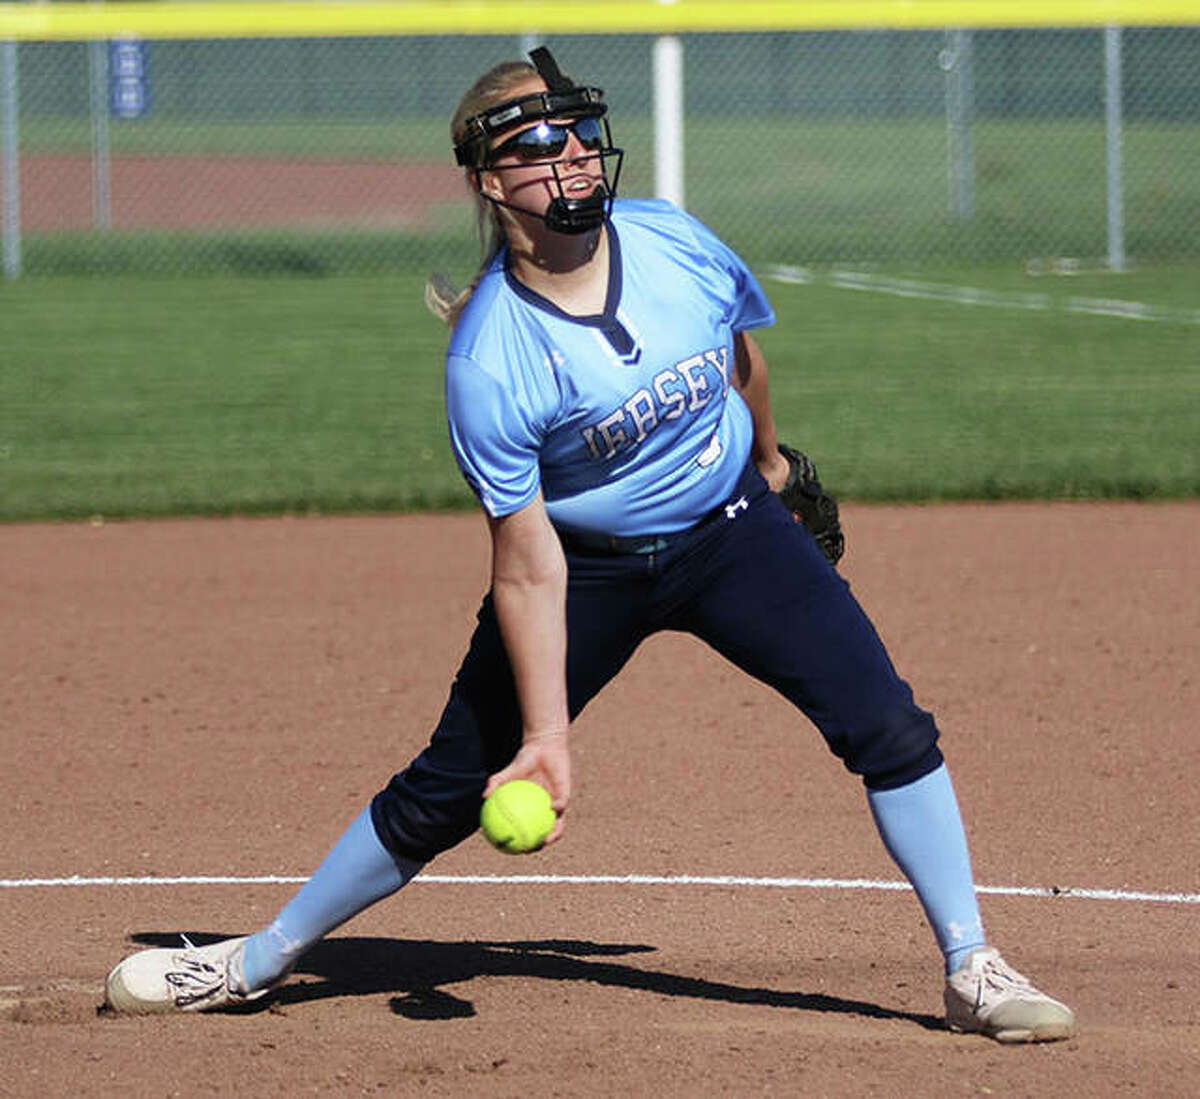 Jersey pitcher Shelby Koenig limited Triad to two runs and the Panthers advanced with a Class 3A regional win in Troy. She is shown in action earlier this season.